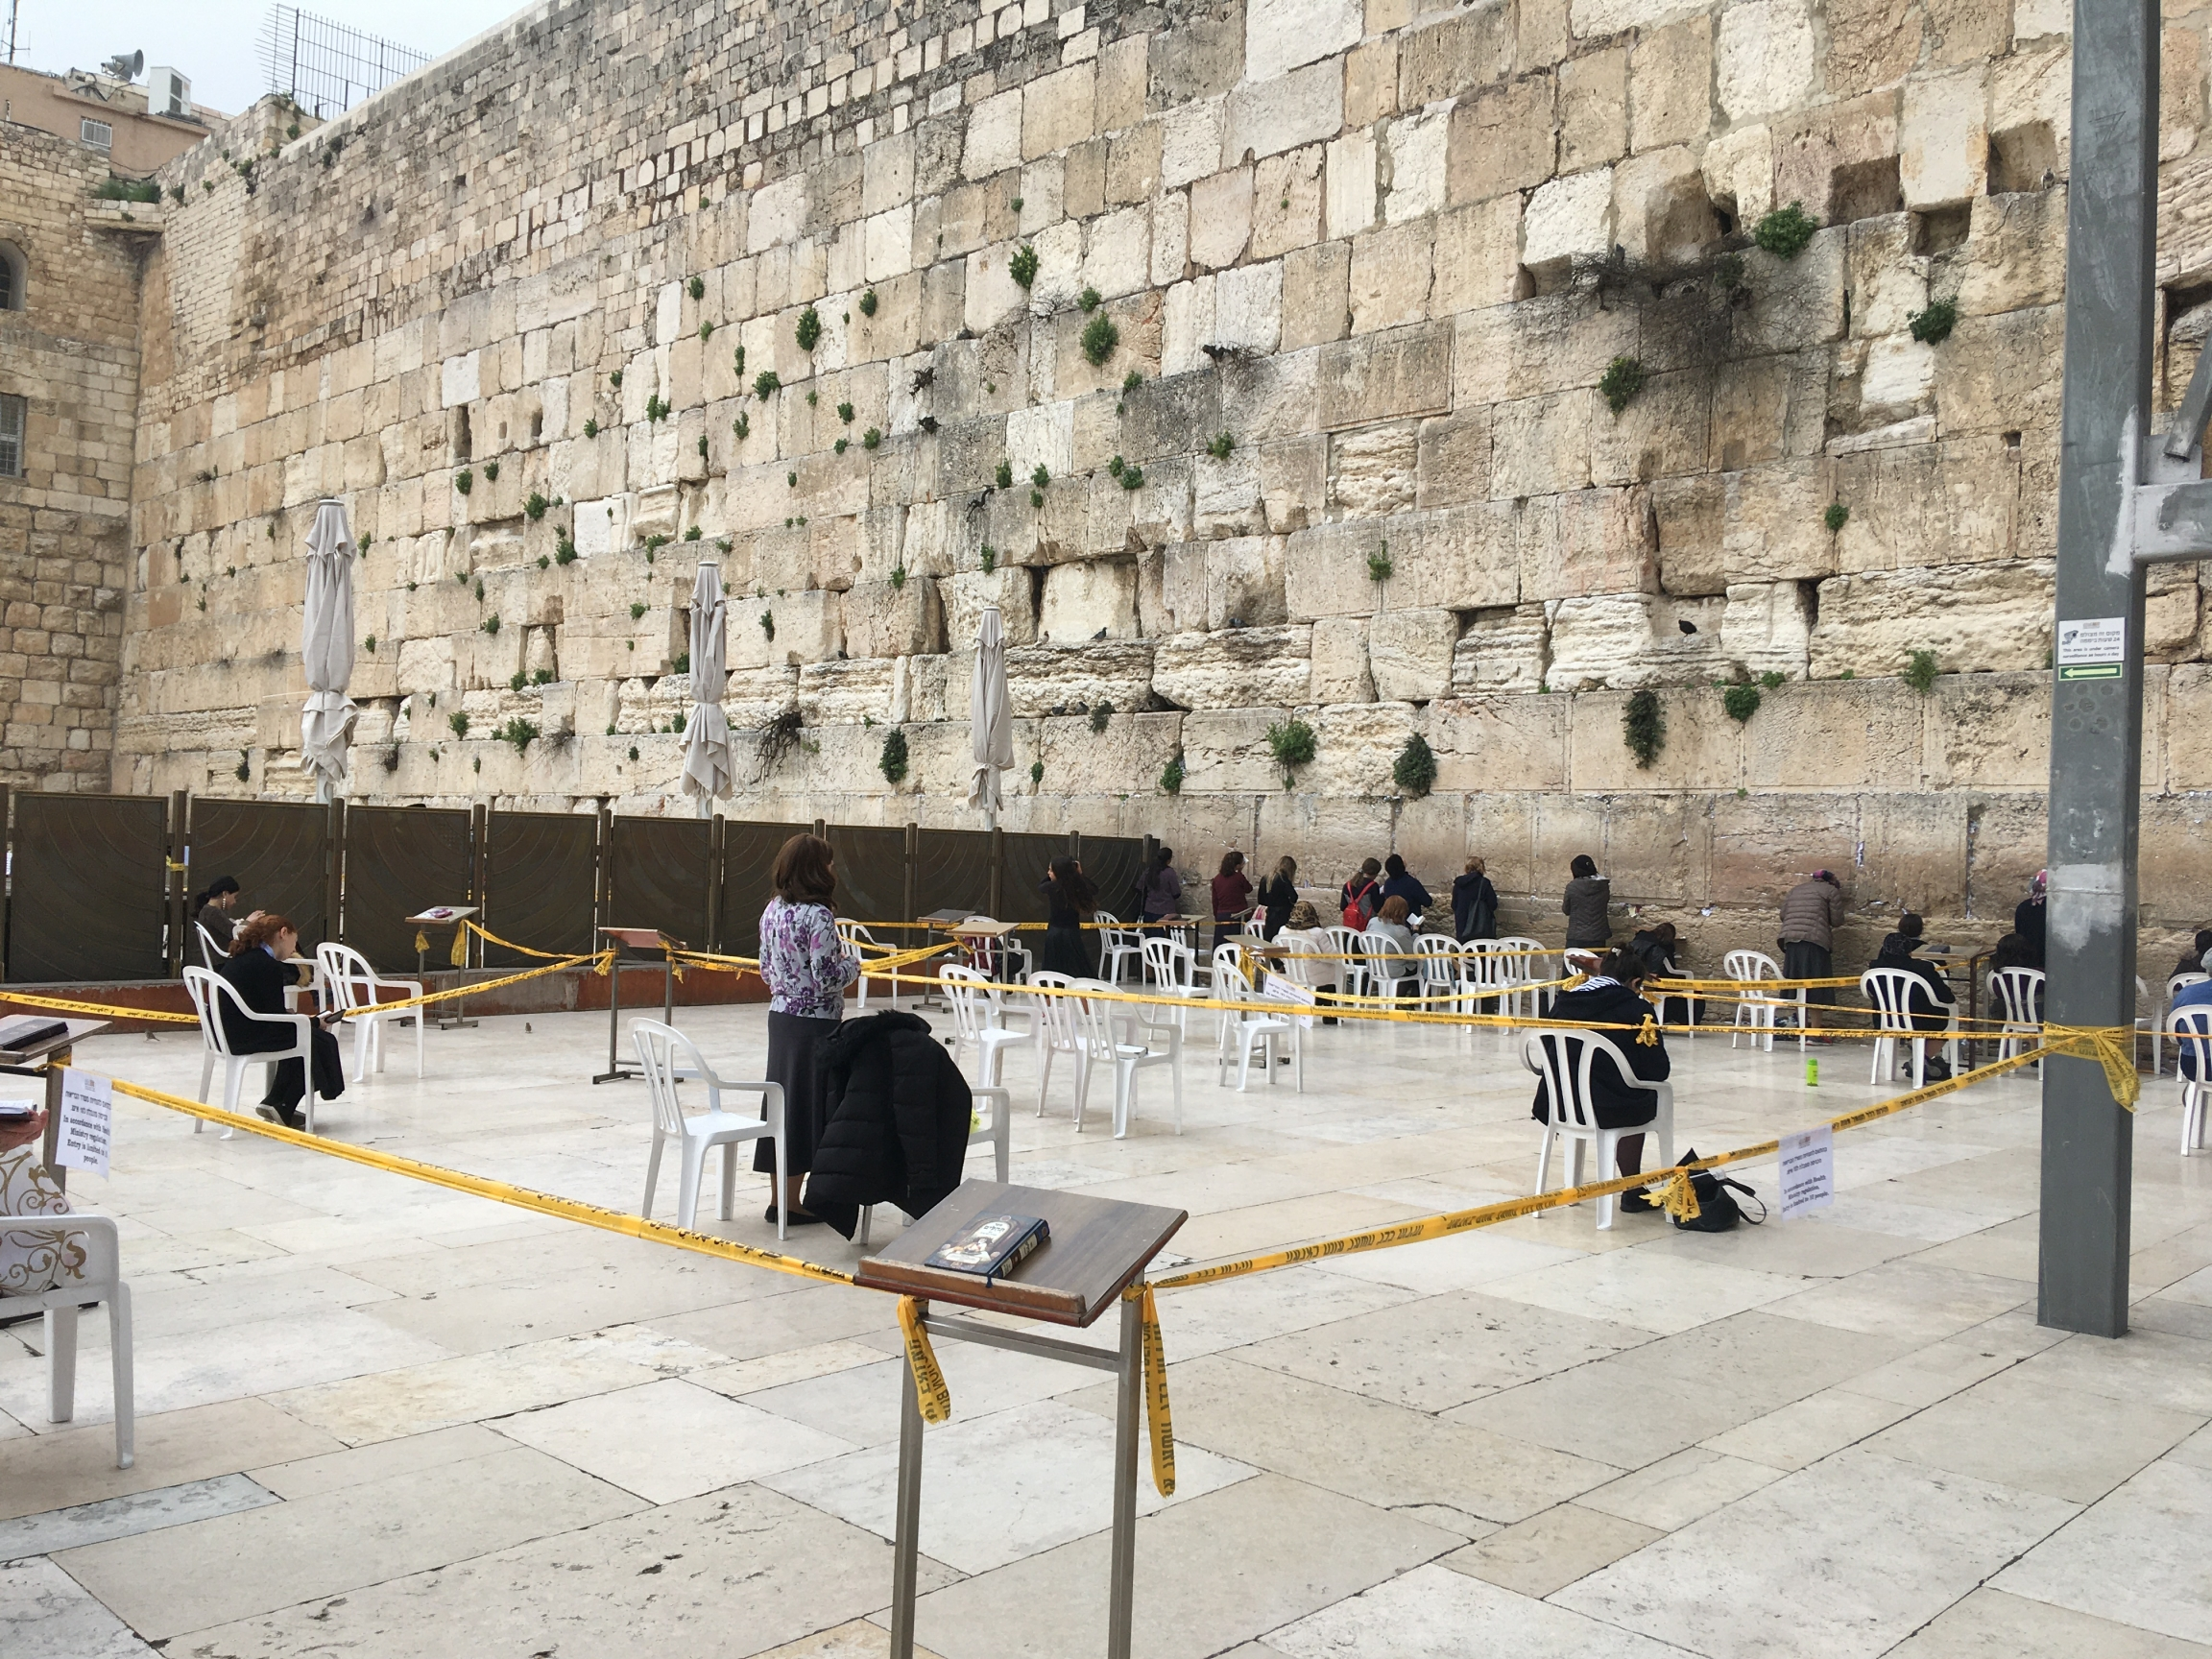 At the Western Wall, prayer is cordoned into sections. Only 10 people at a time may worship in each subsection.